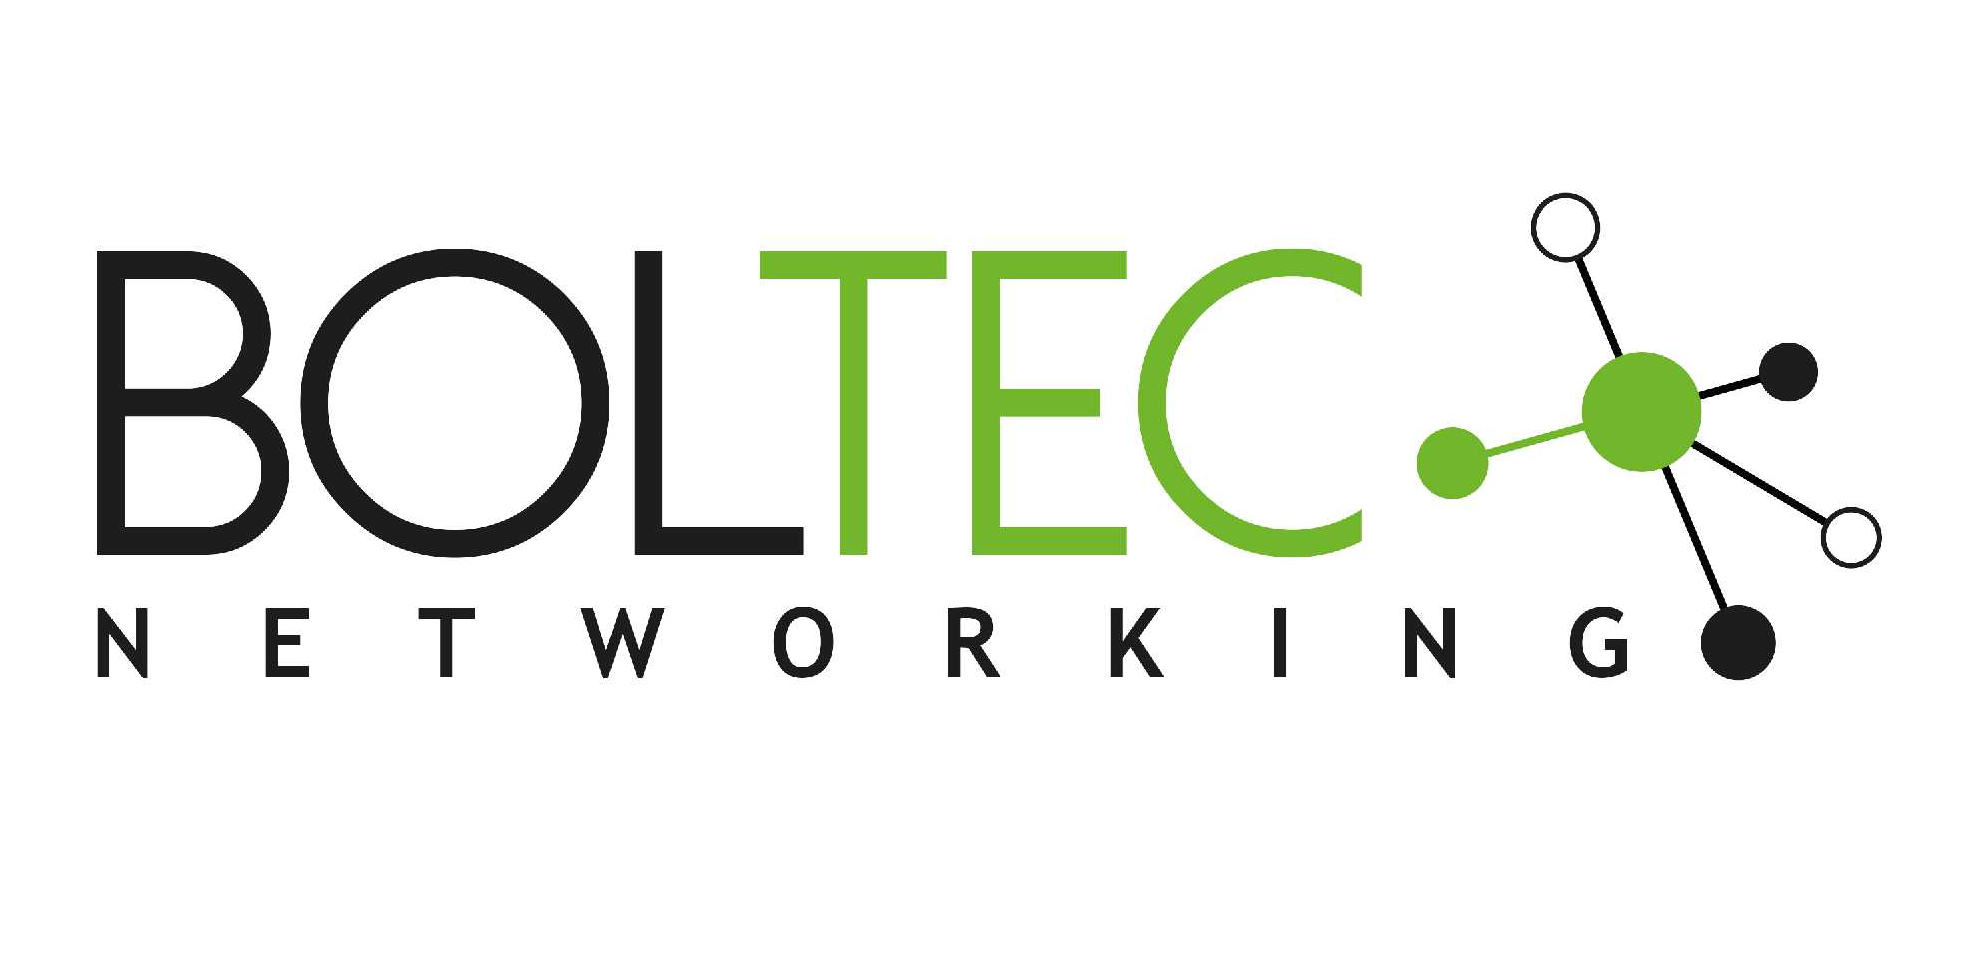 Boltec Networking